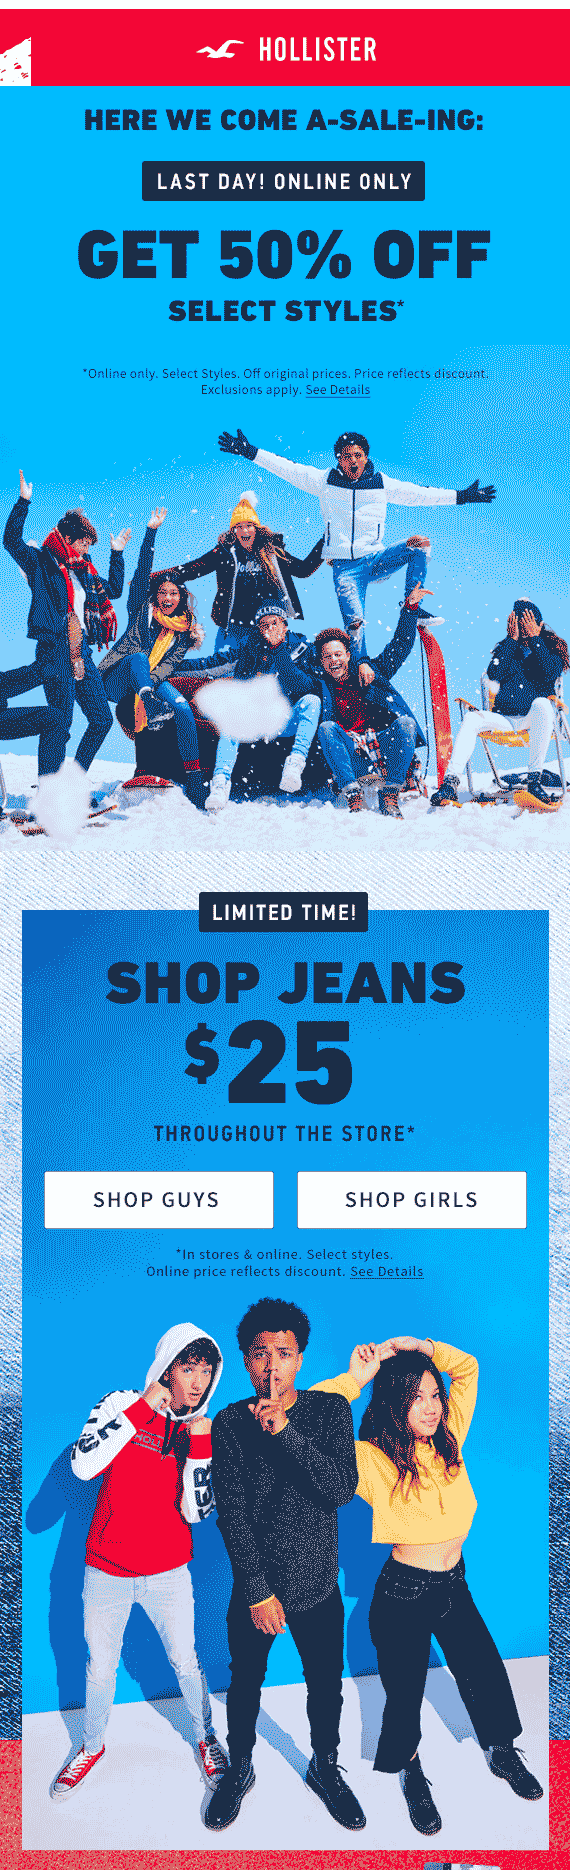 Hollister Coupon January 2020 $25 jeans at Hollister, ditto online